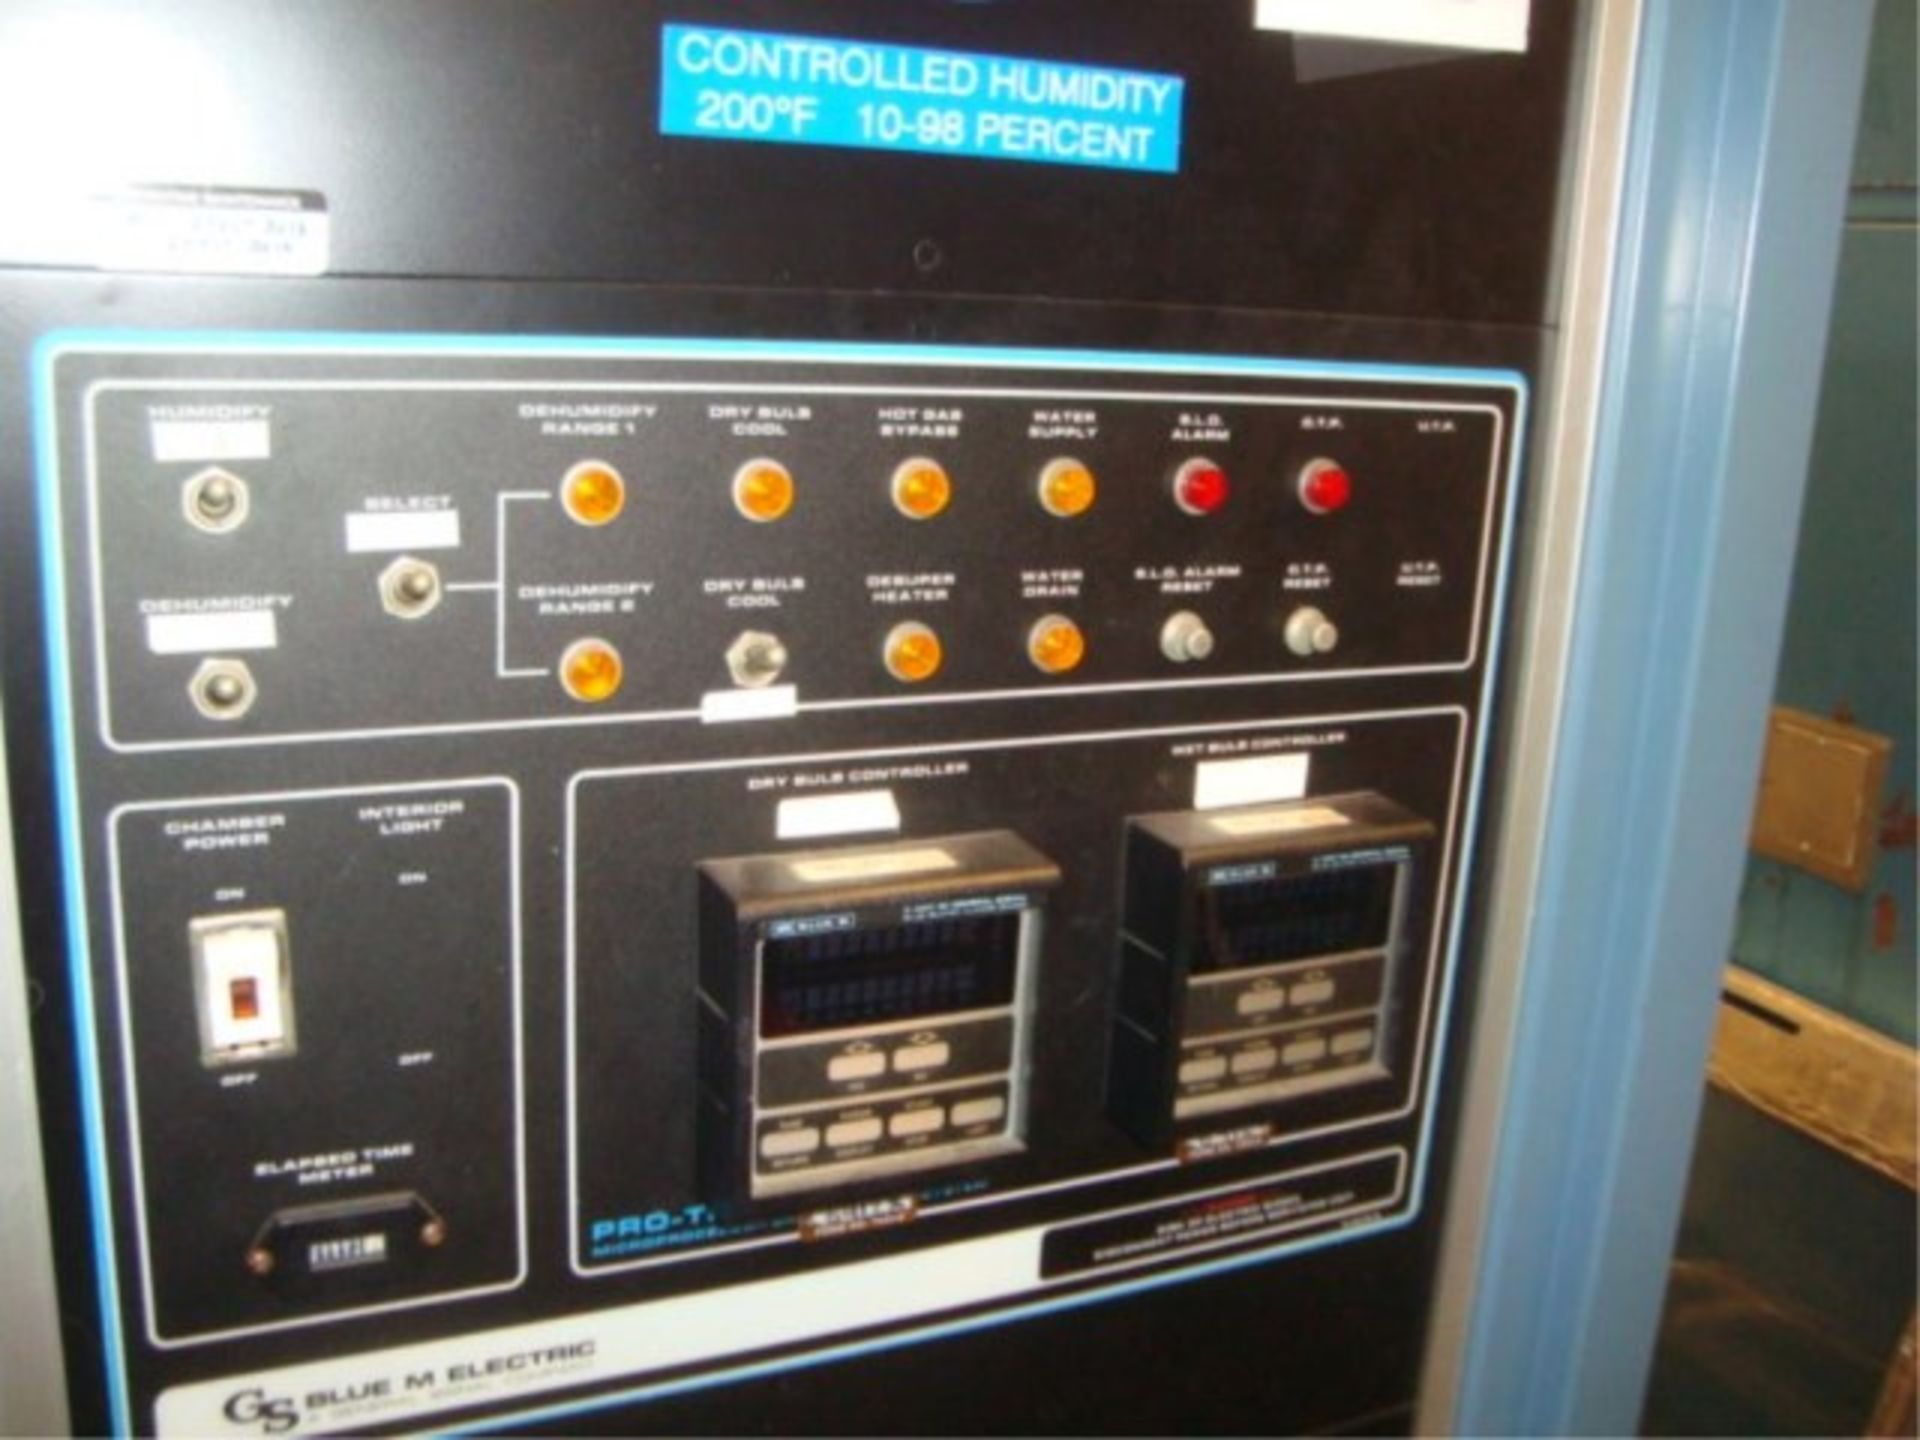 Humidity Test Chamber - Image 10 of 12